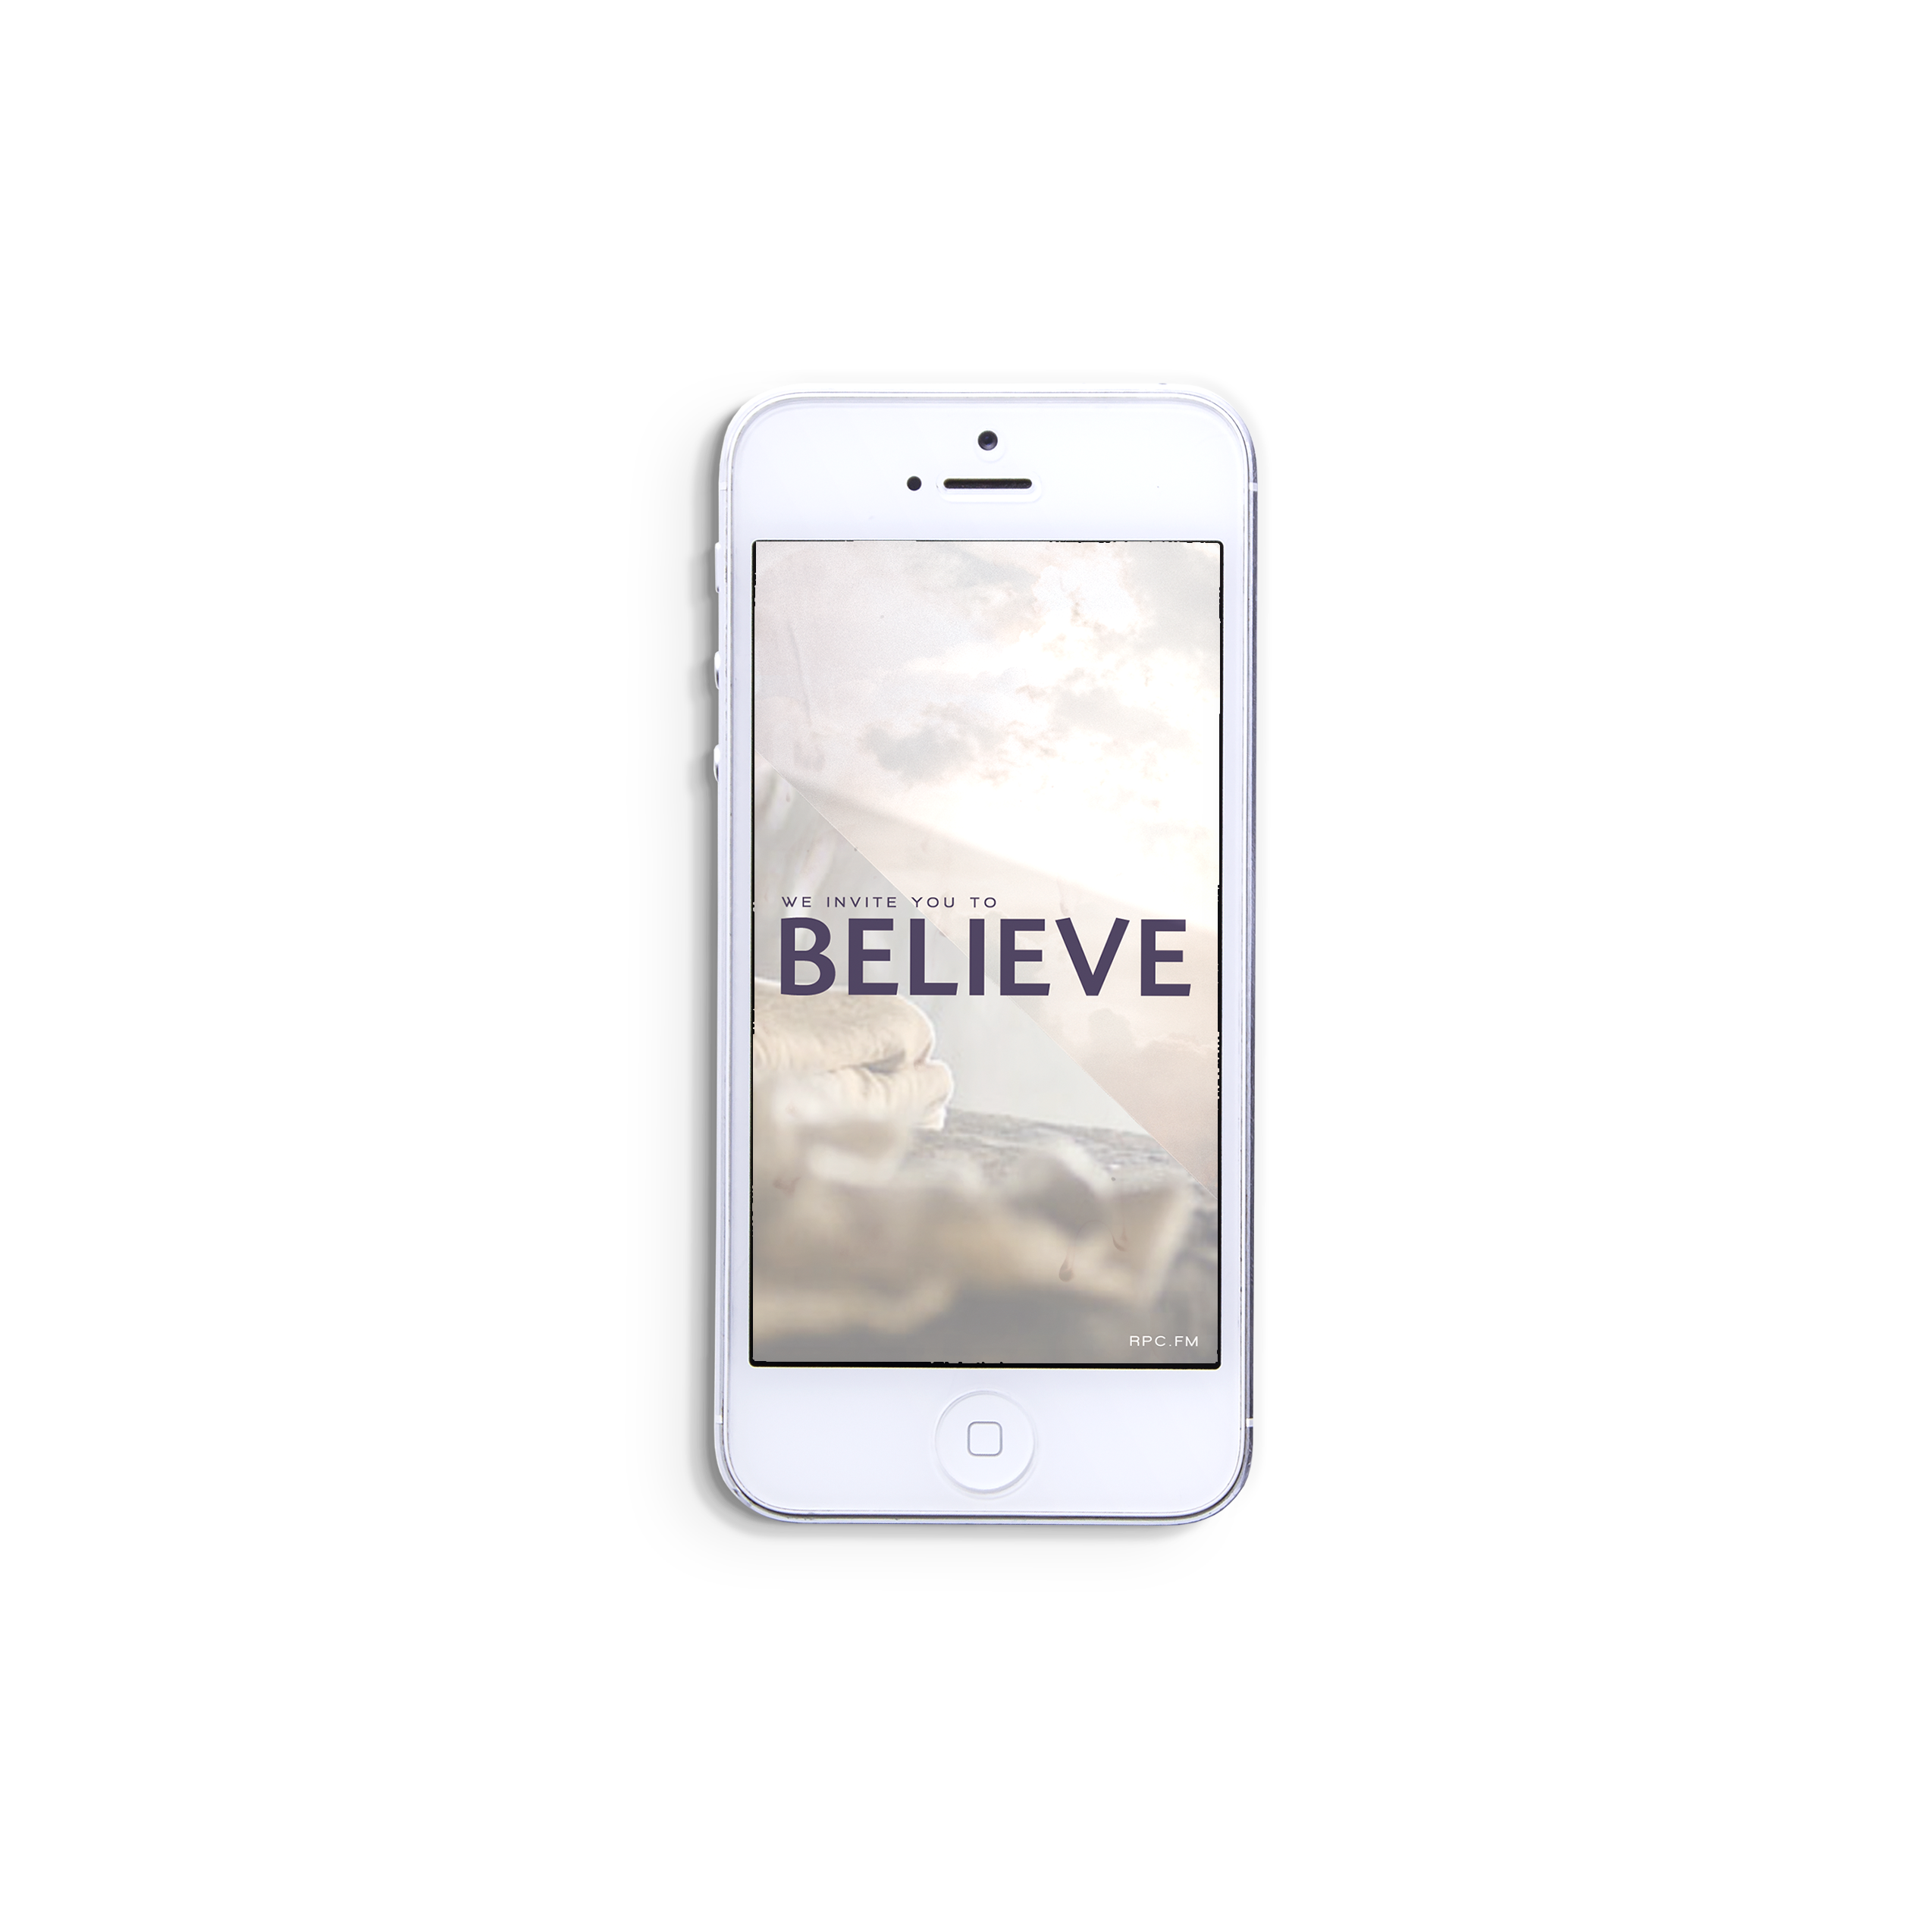 We-Invite-You-to-Believe-iPhone